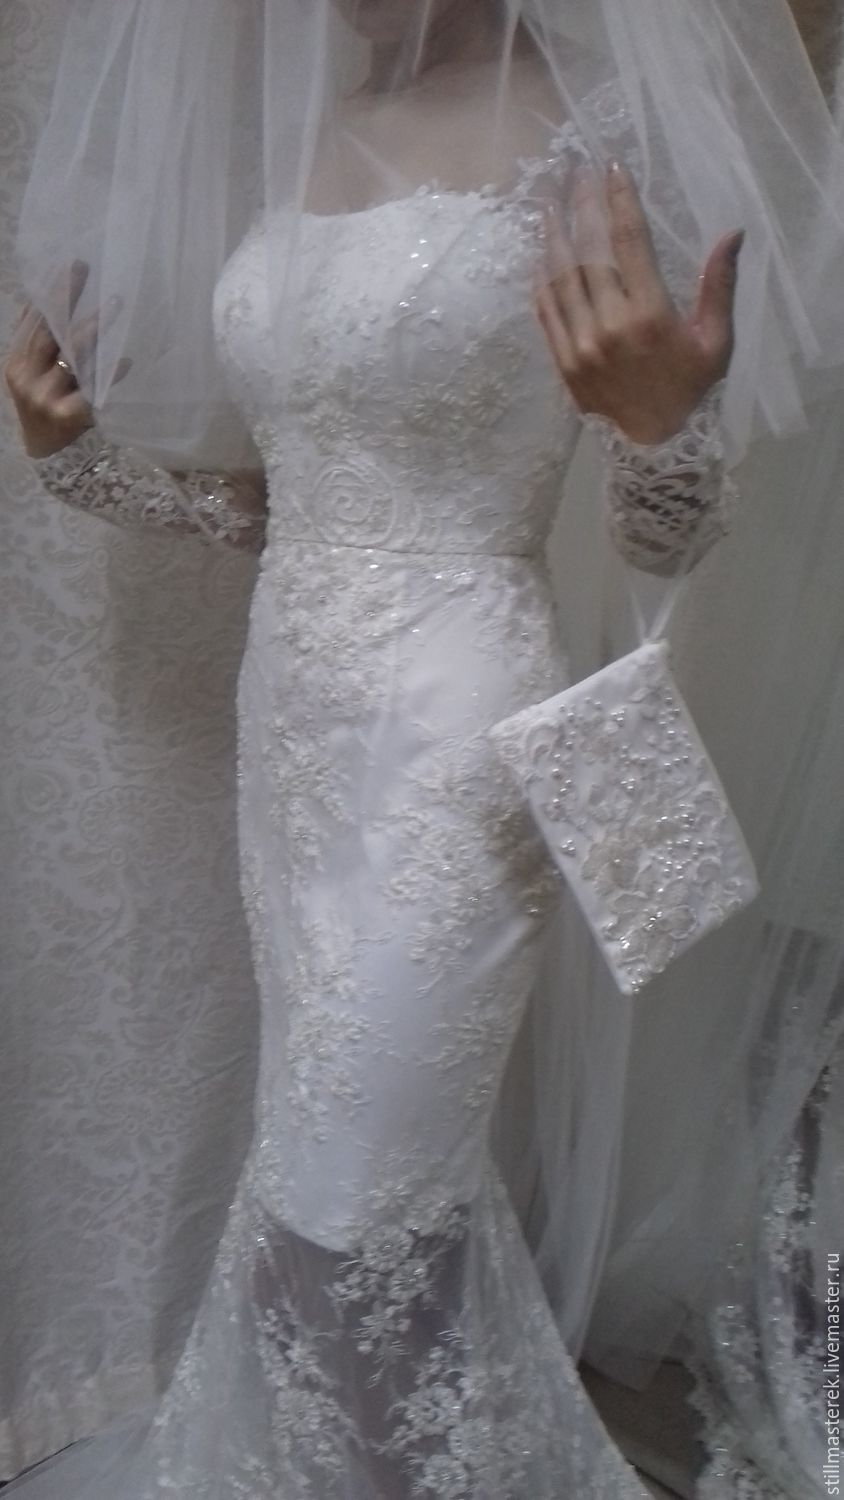 Lace wedding dress in floor, Dresses, Moscow,  Фото №1